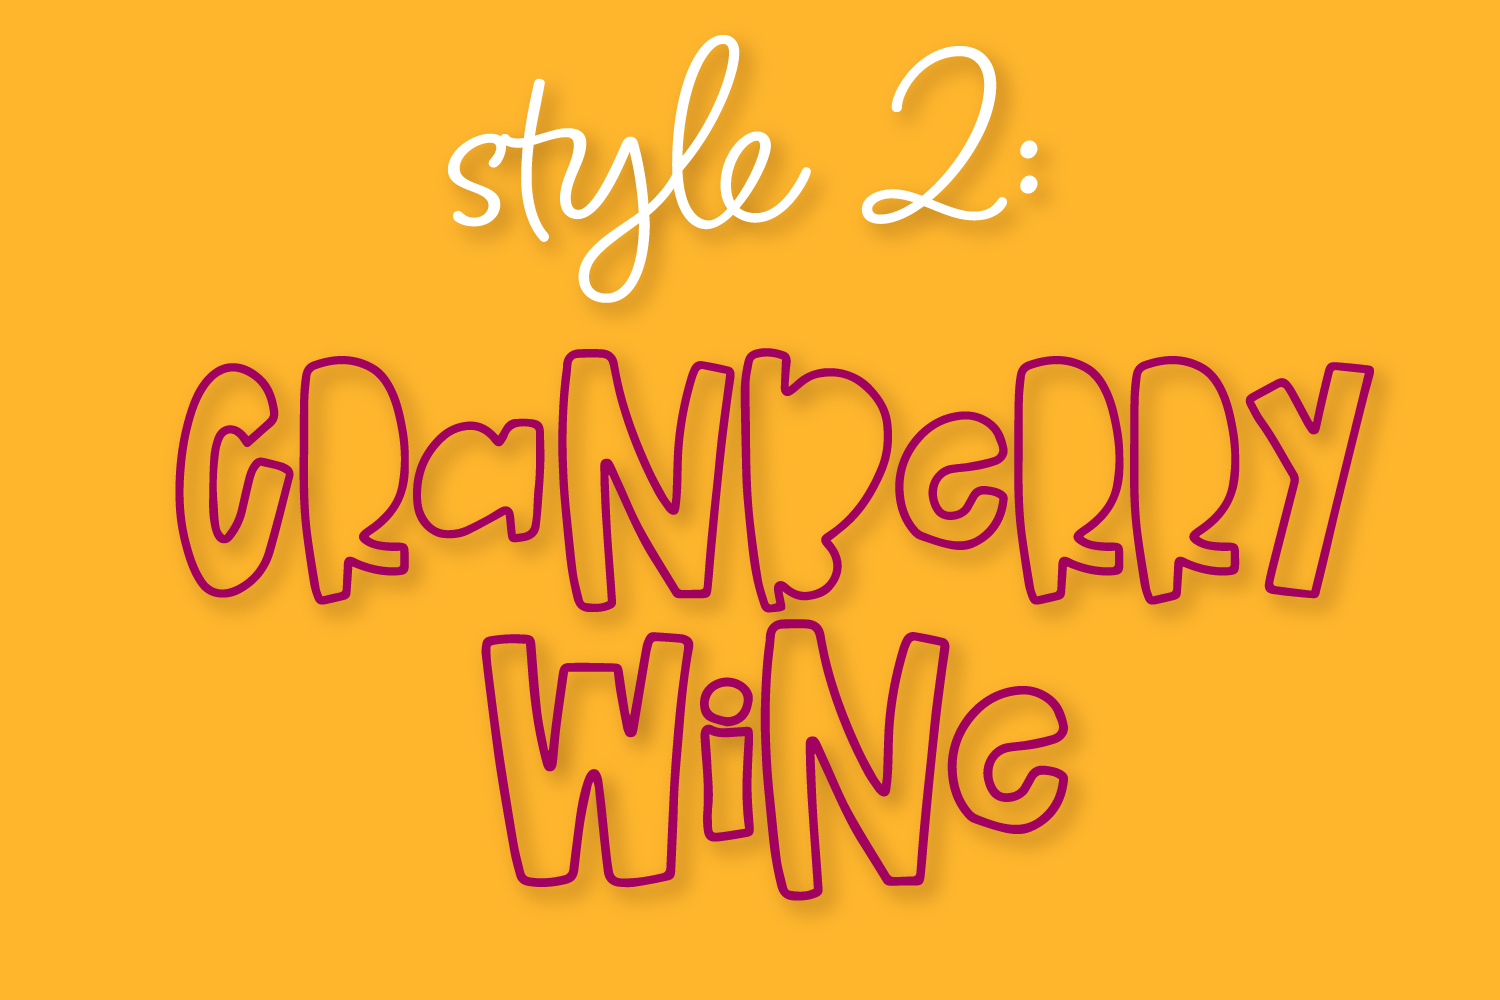 Cranberry Wine - A Striped Font Family of 6 New Fonts! example image 3